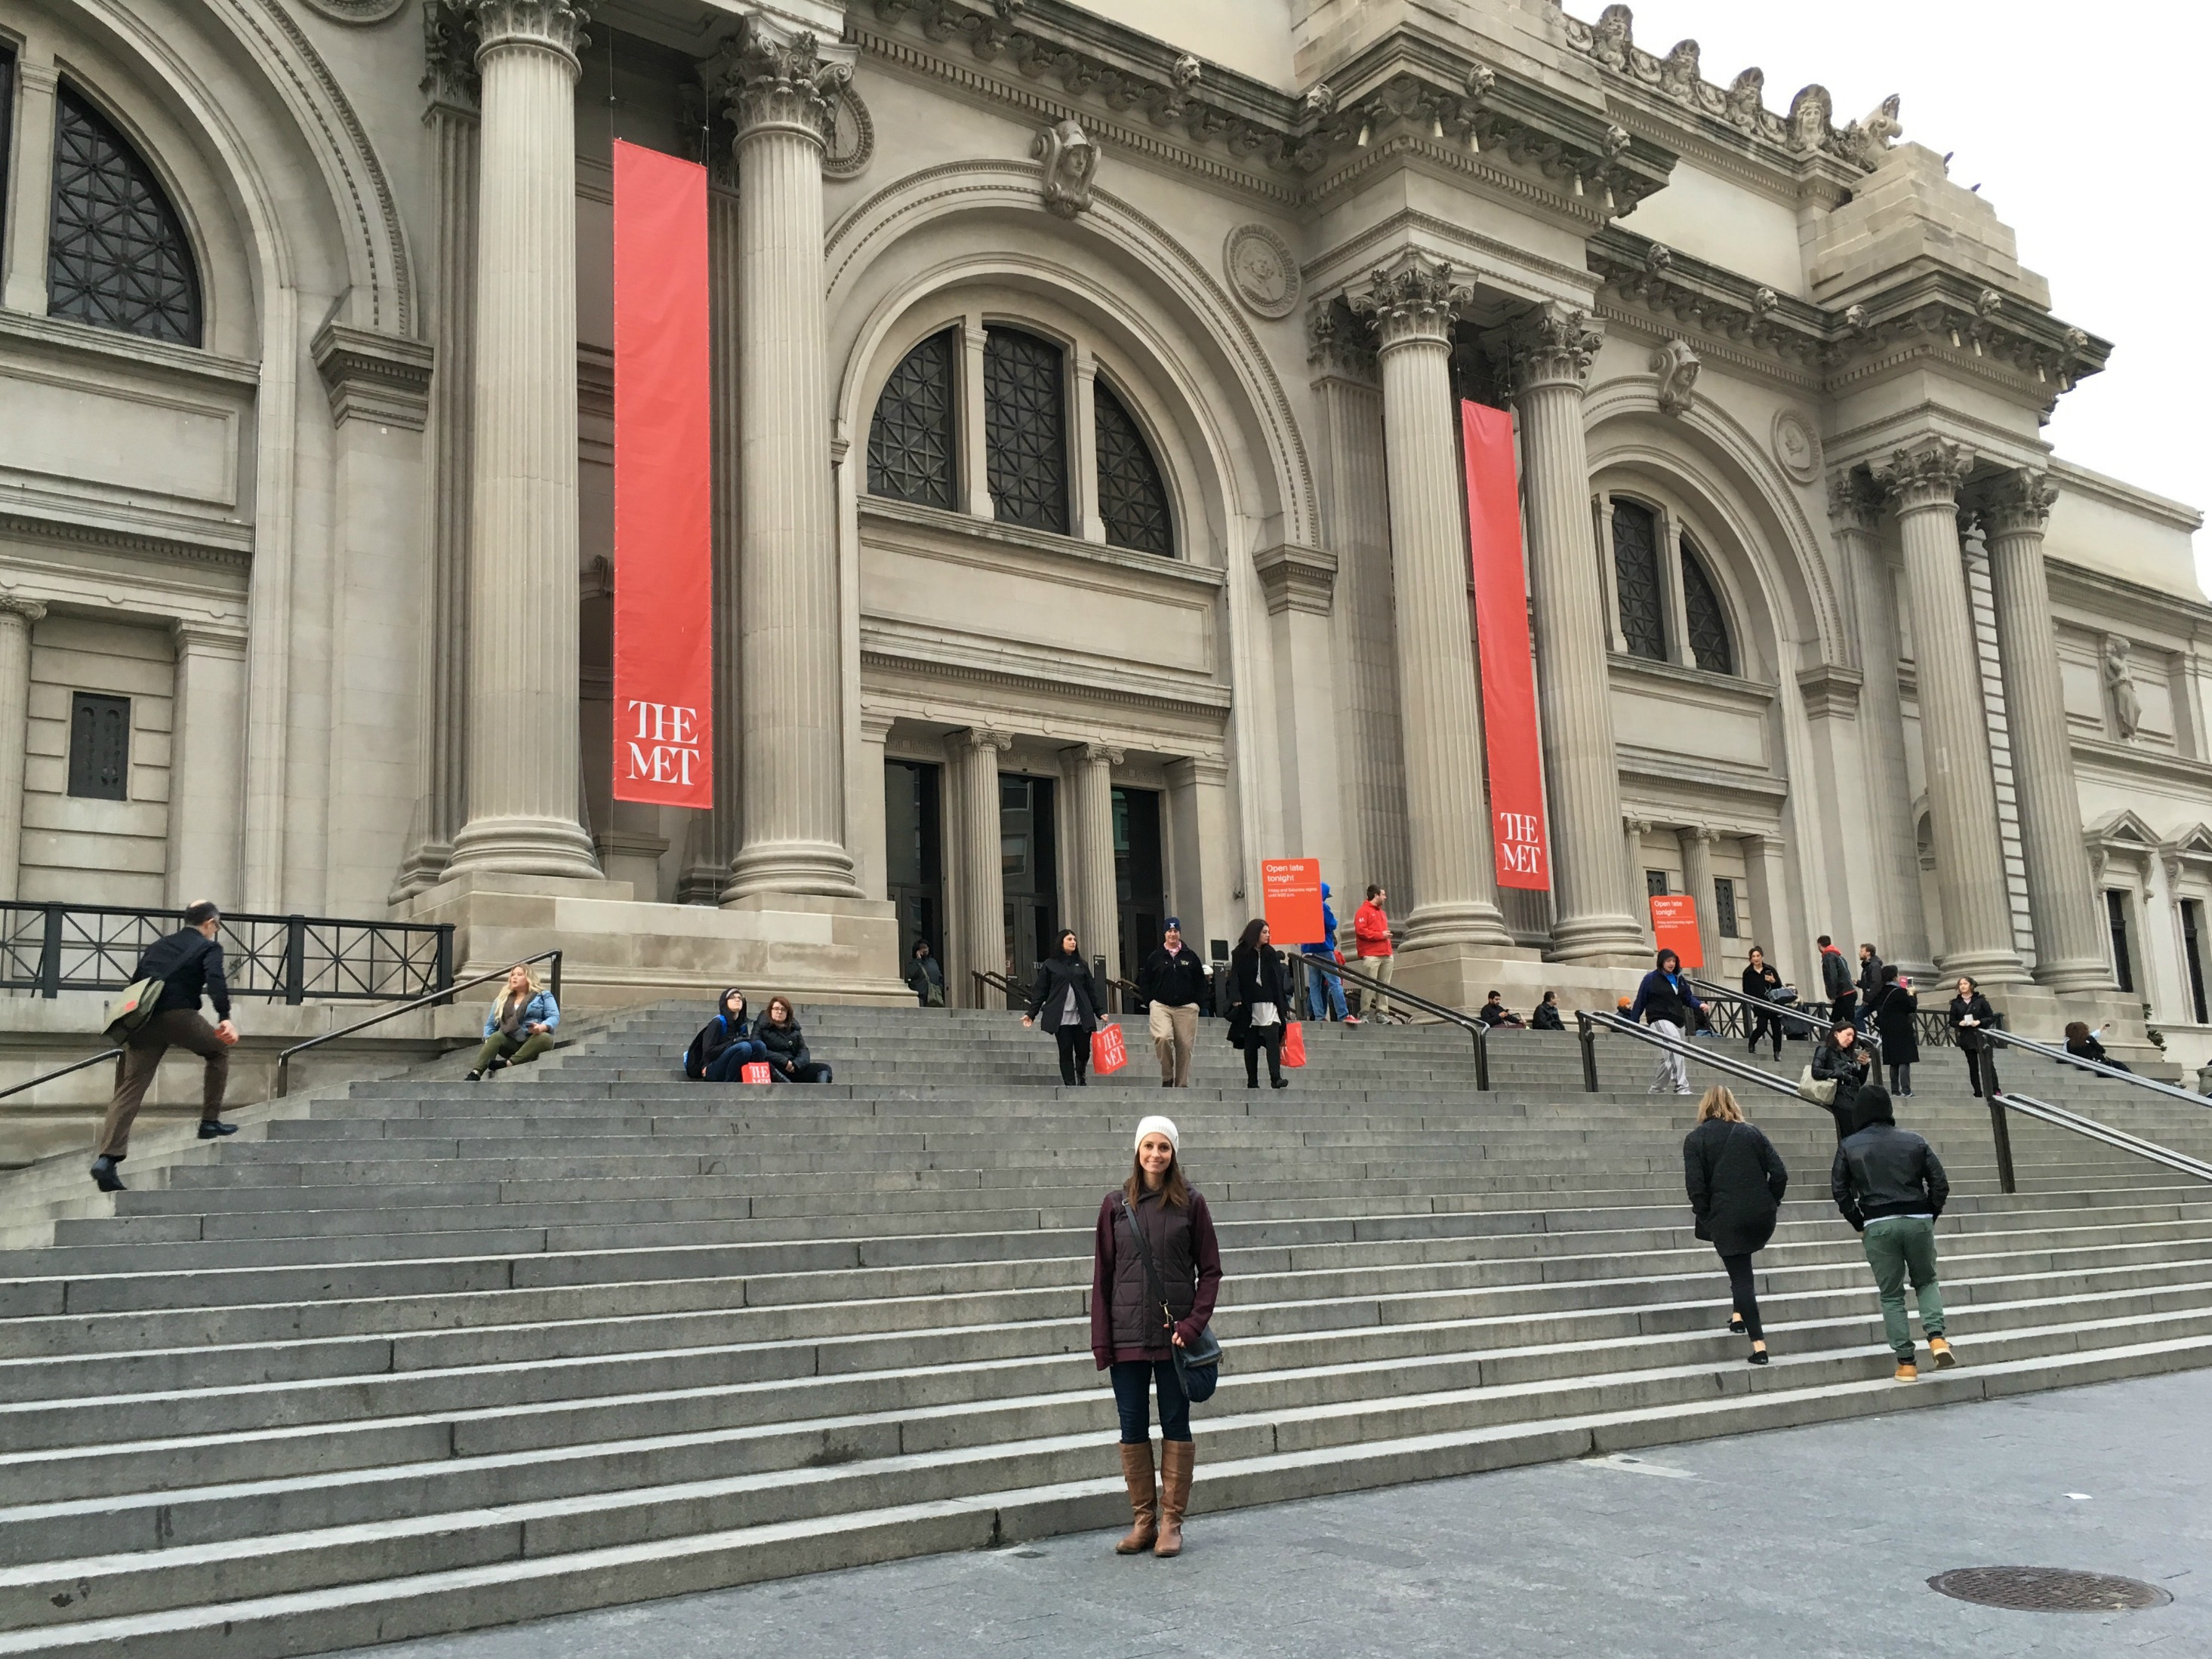 The Met NYC